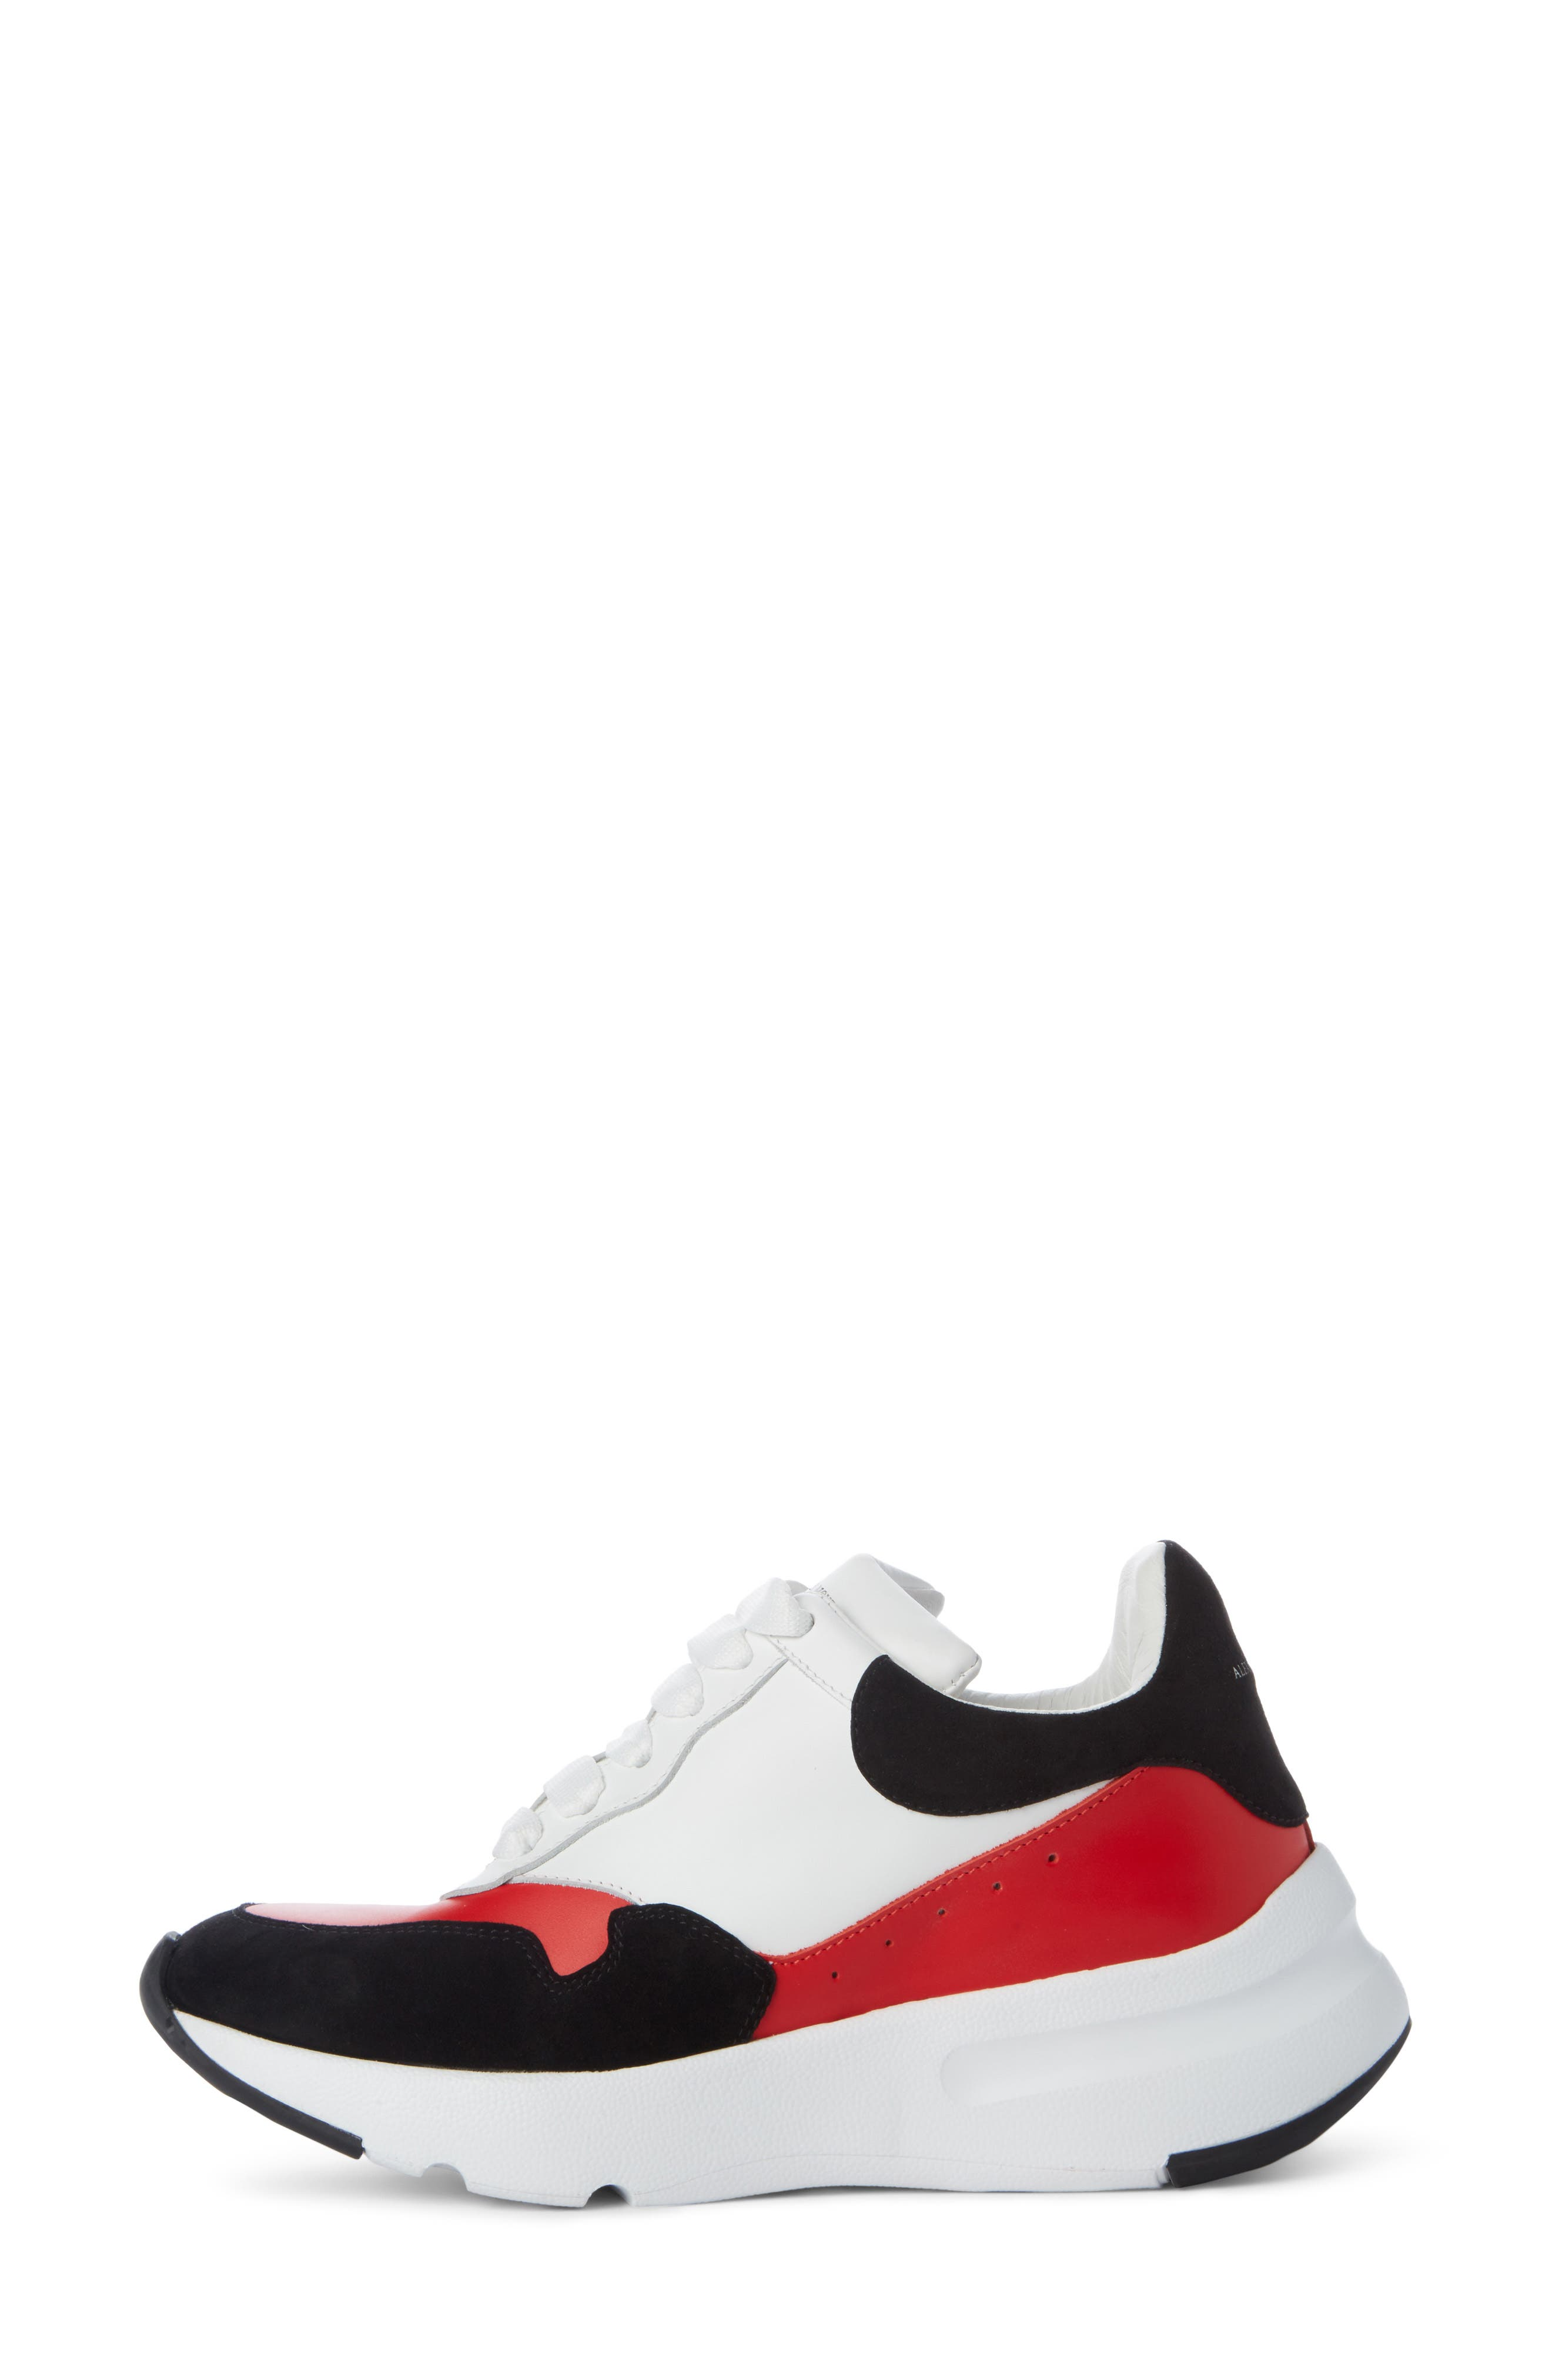 Runner Lace-Up Sneaker,                             Alternate thumbnail 3, color,                             Black/ Red/ White